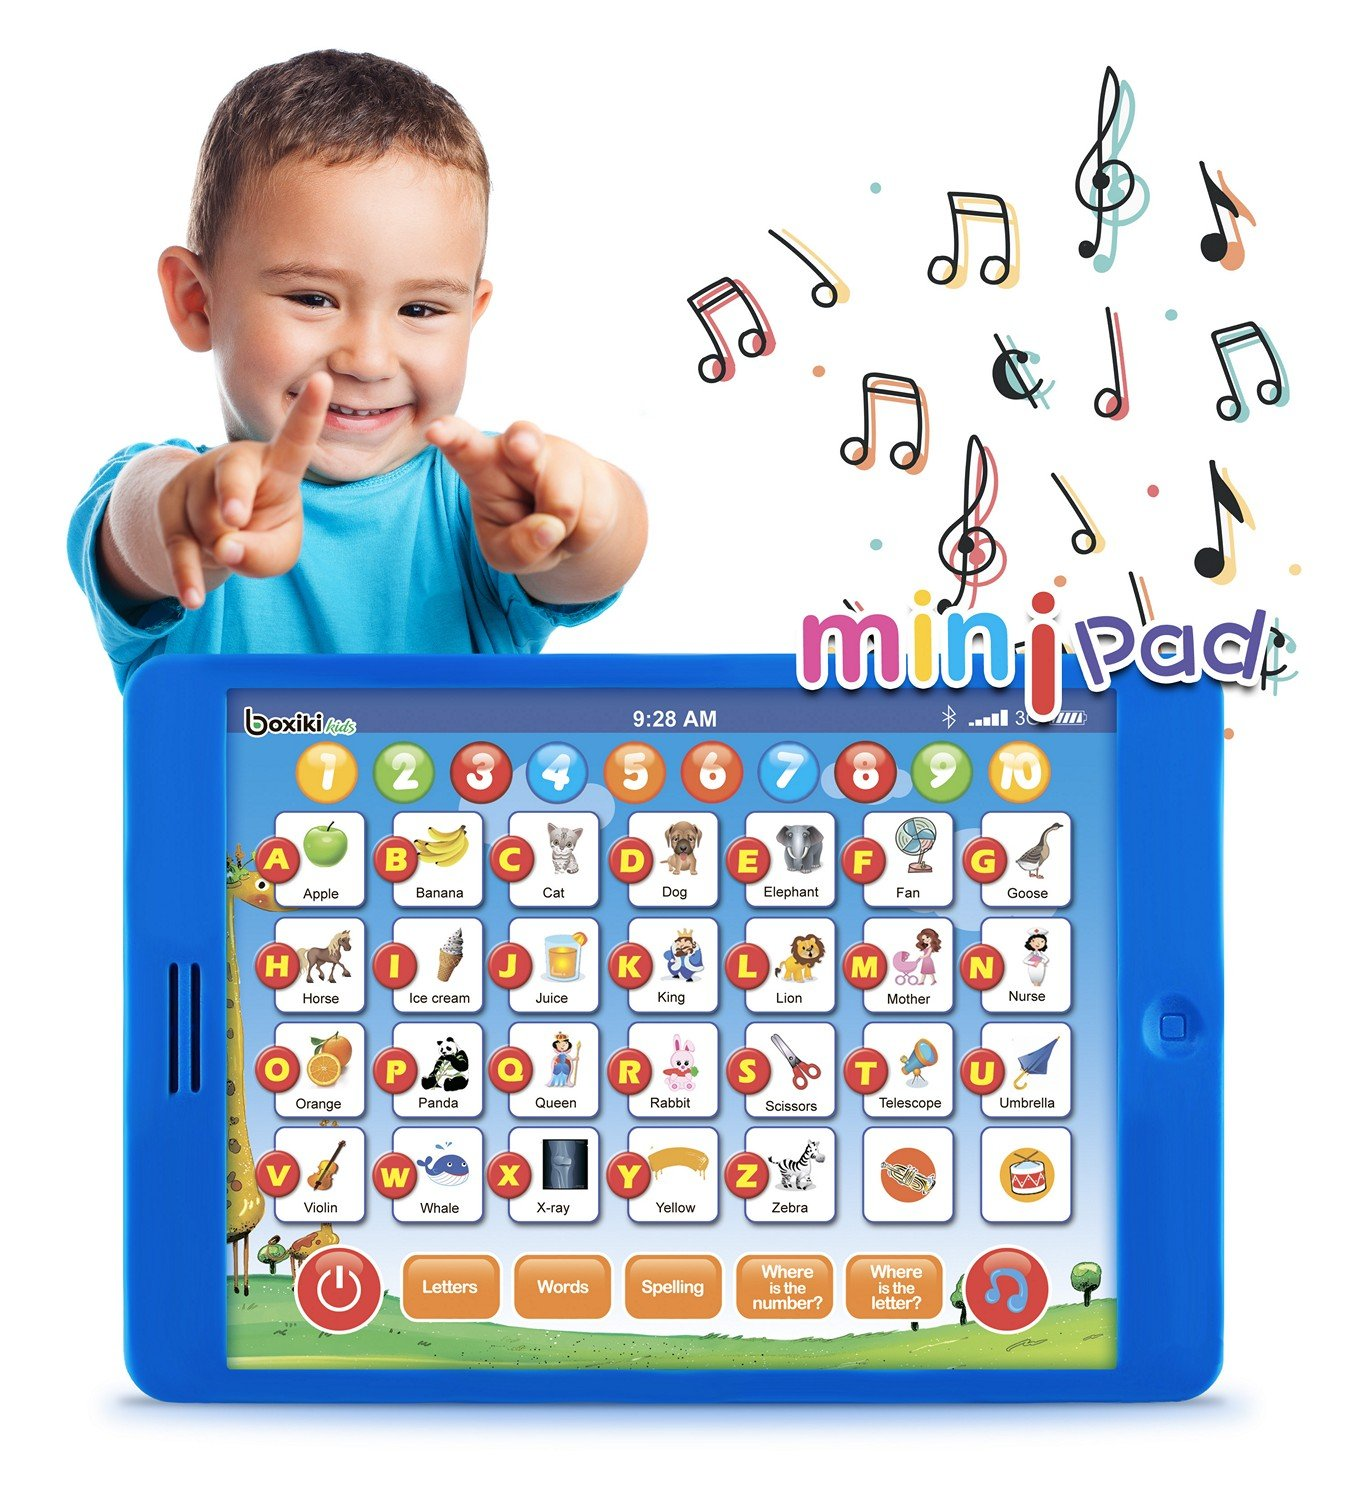 Boxiki kids Learning Pad Fun Kids Tablet with 6 Toddler Learning Games Early Child Development Toy for Number Learning